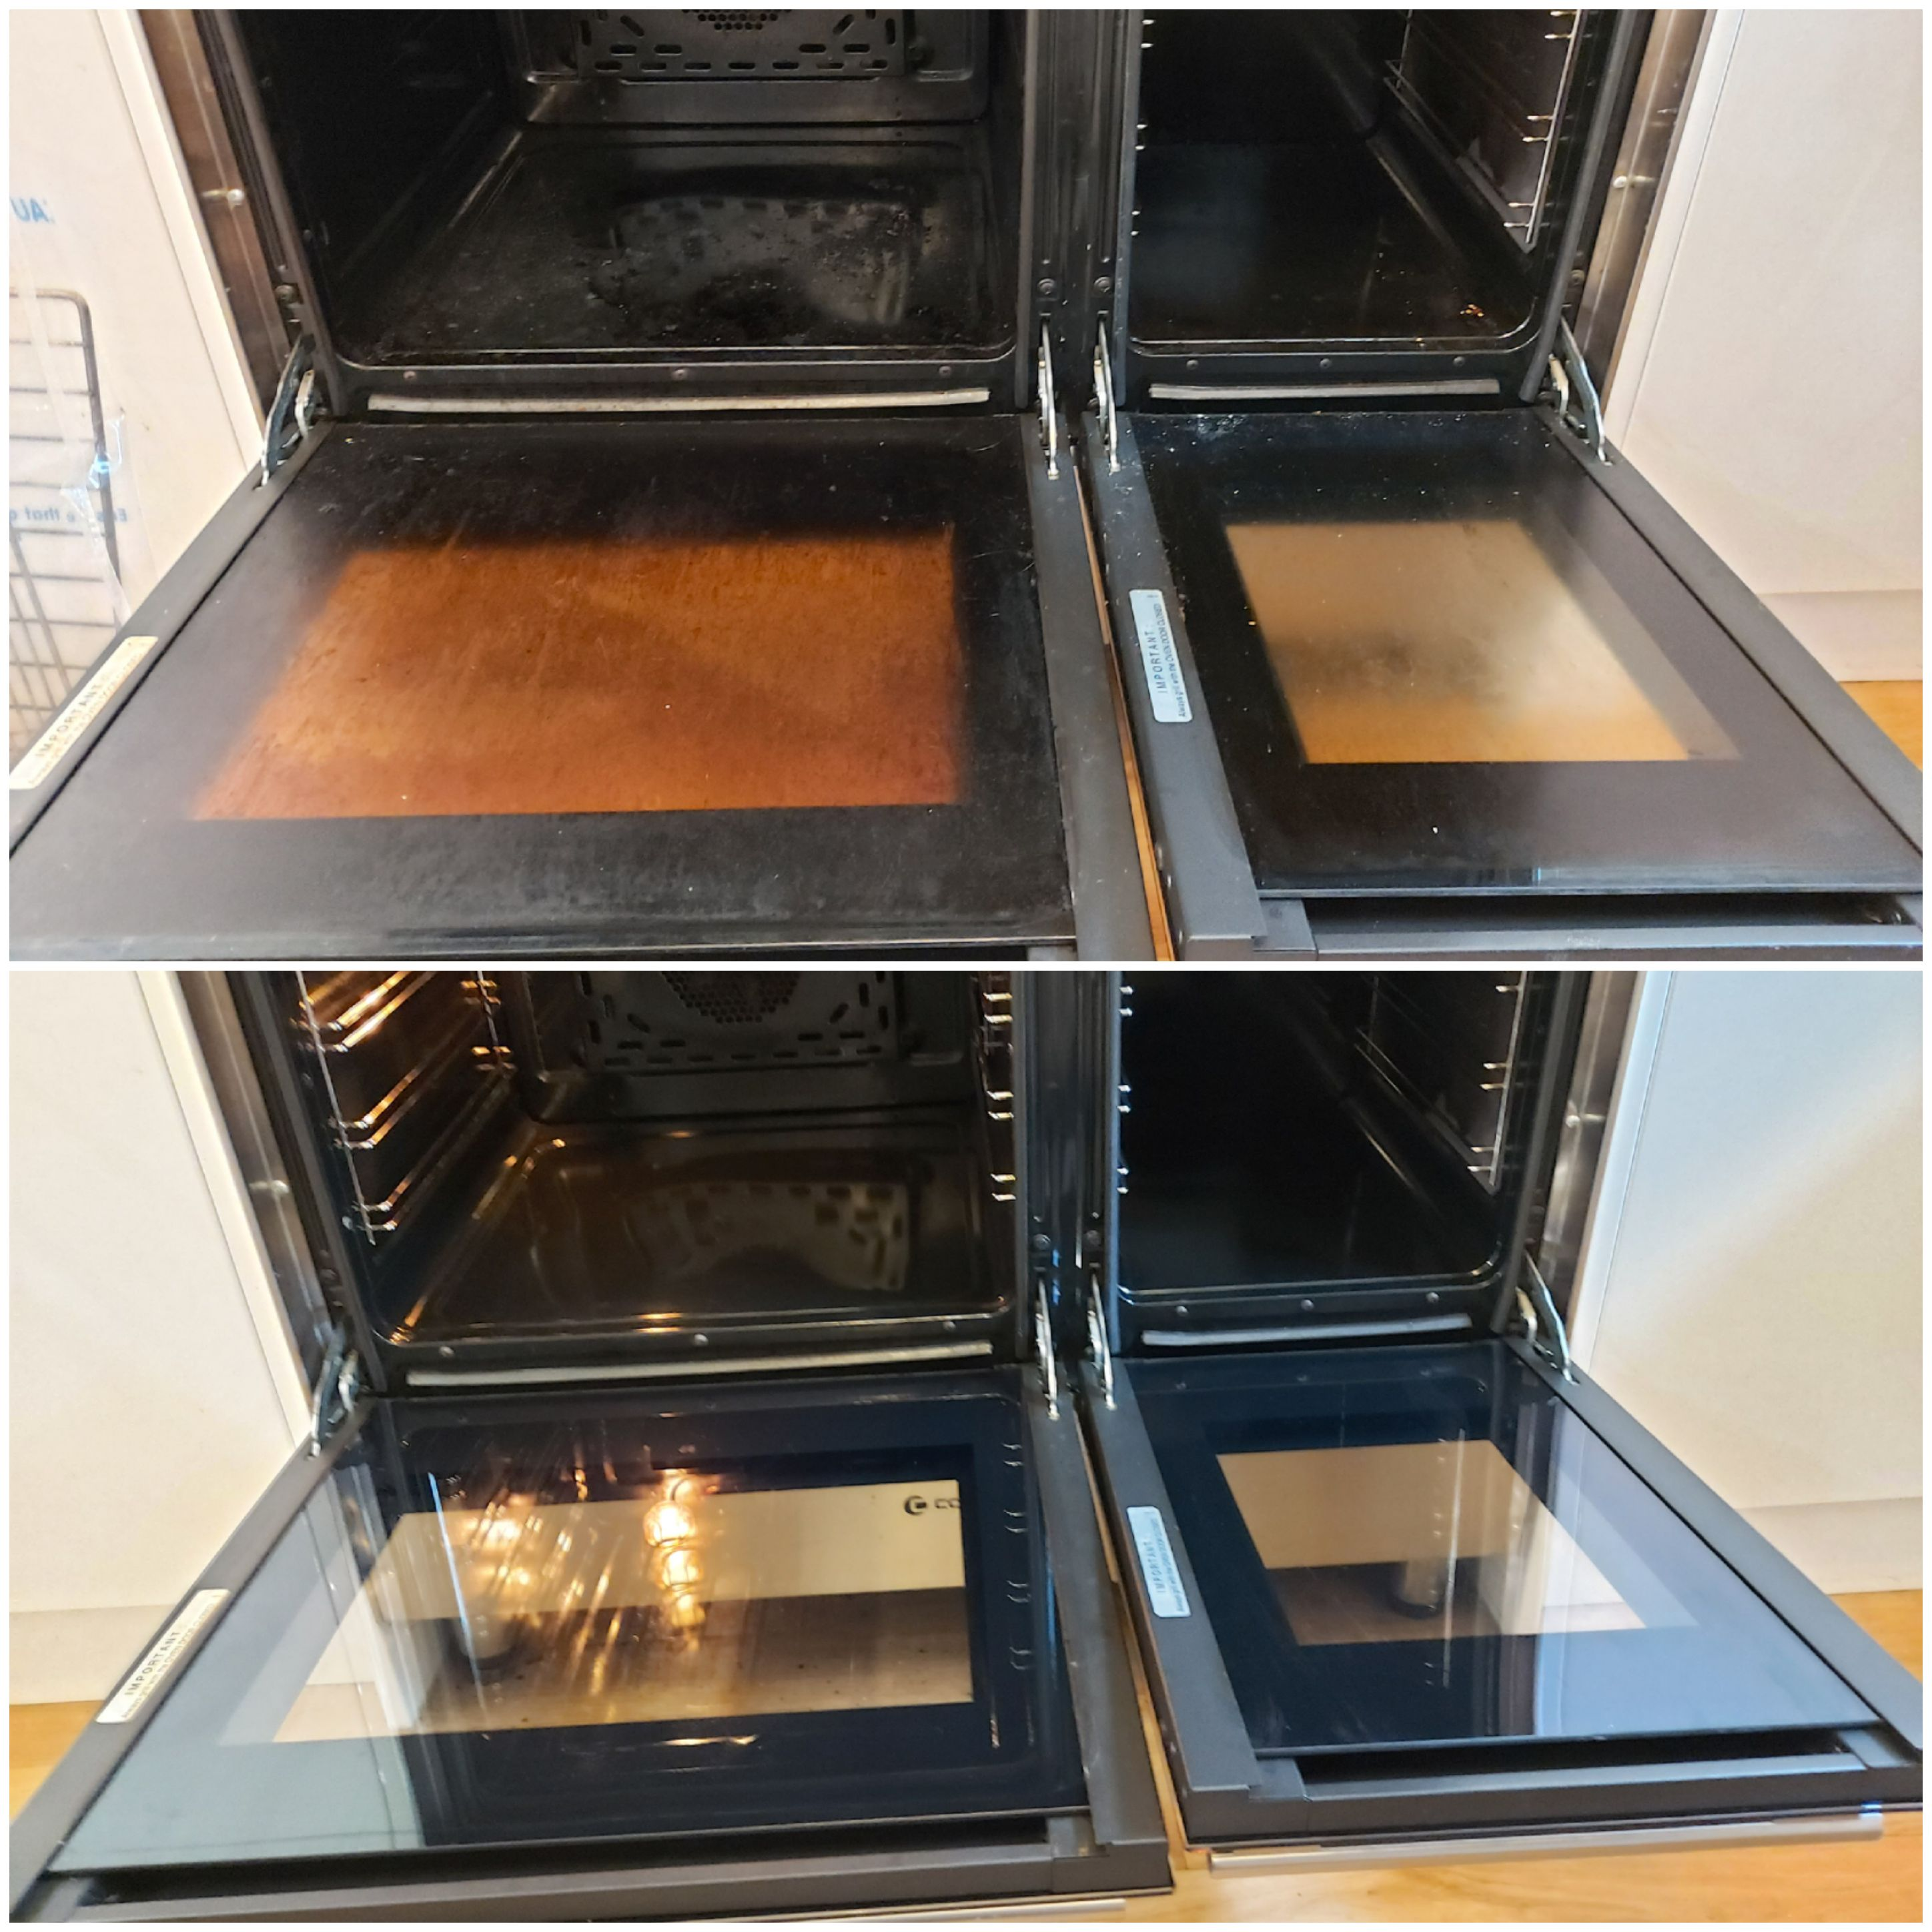 Oven Cleaning Special Offer Now Only £40.00